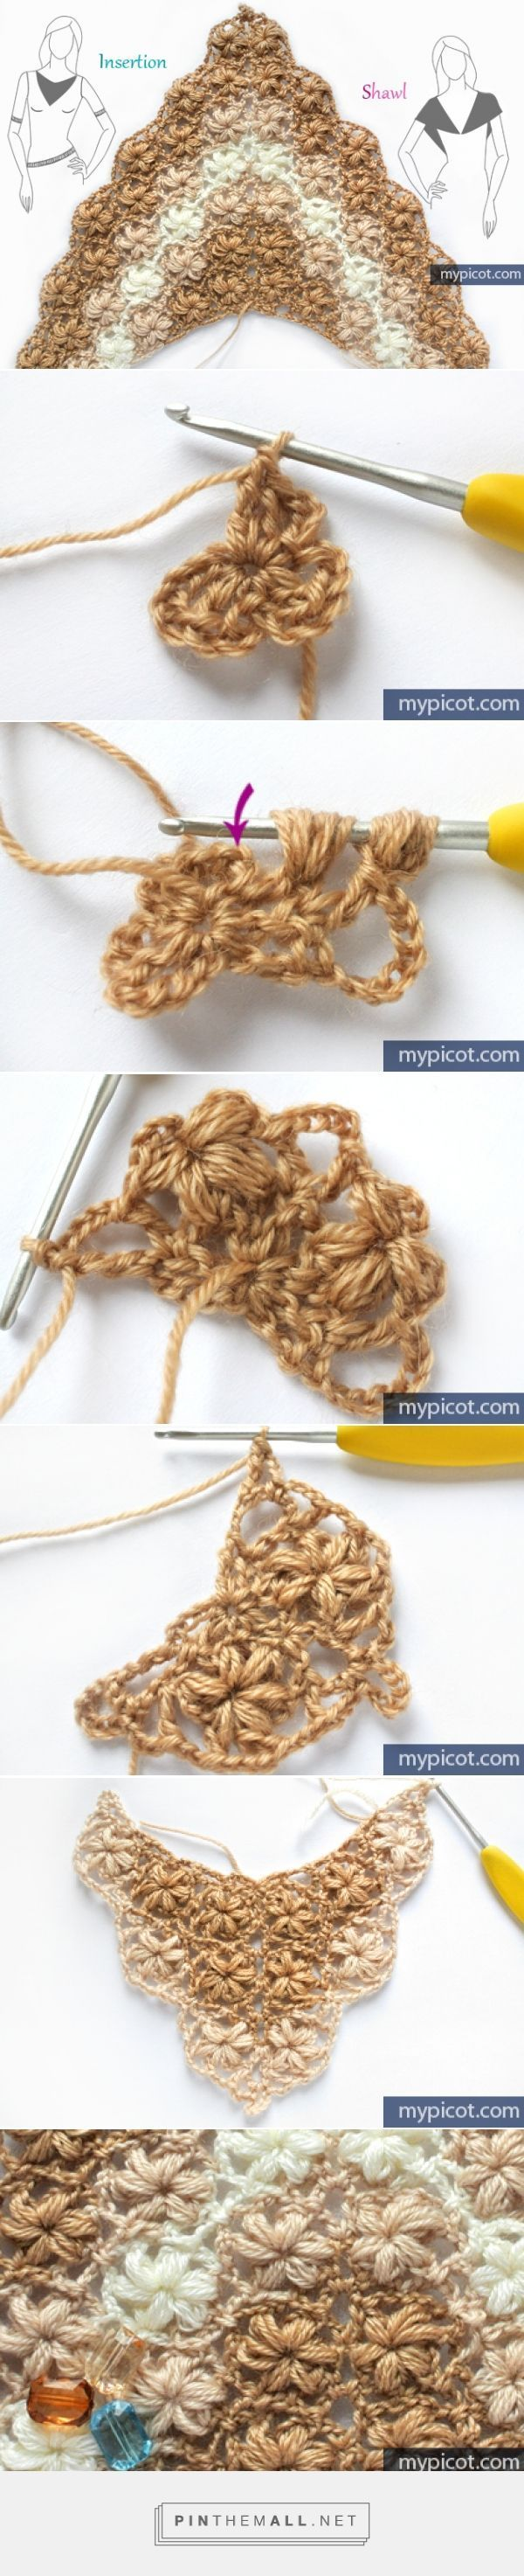 How to crochet flower stitch ...♥ Deniz ♥